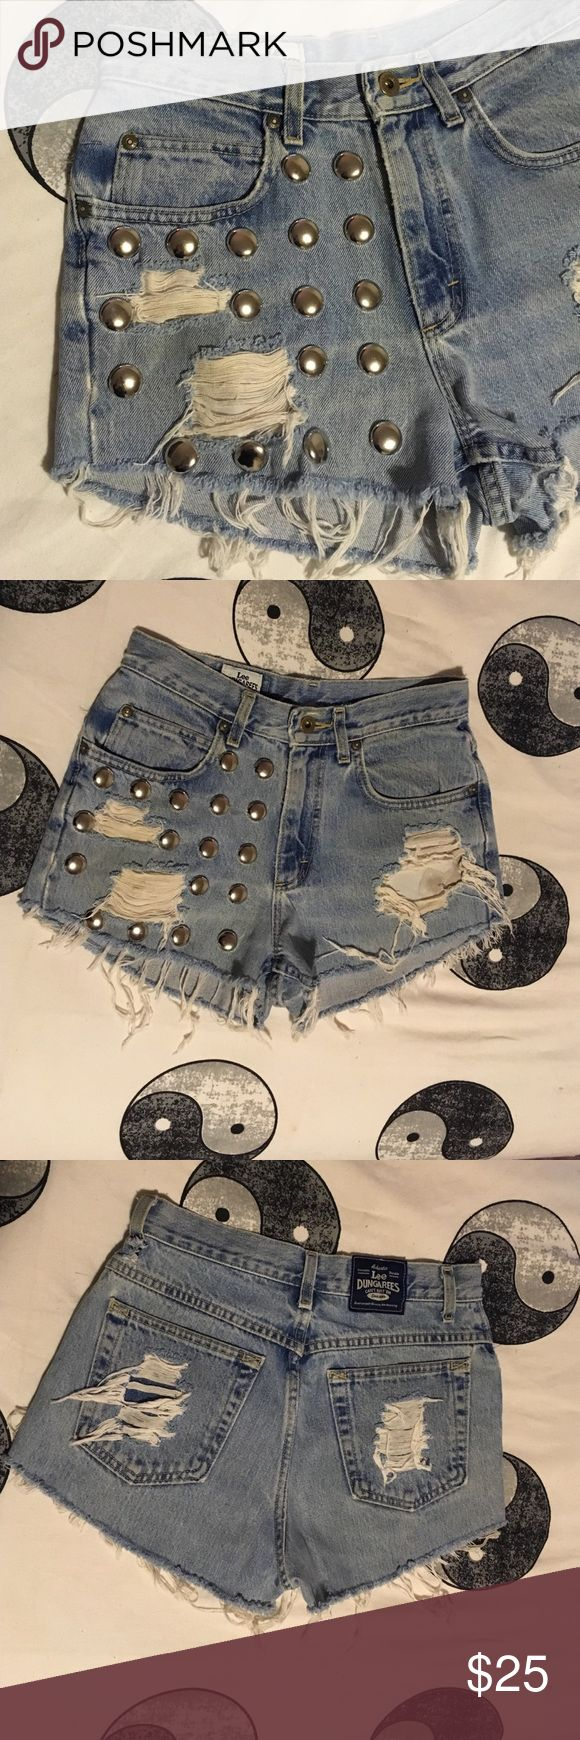 DIY High waisted jean shorts Cut from original Lee Dungarees jeans. Silver studs added to one side. Lee Dungarees Shorts Jean Shorts